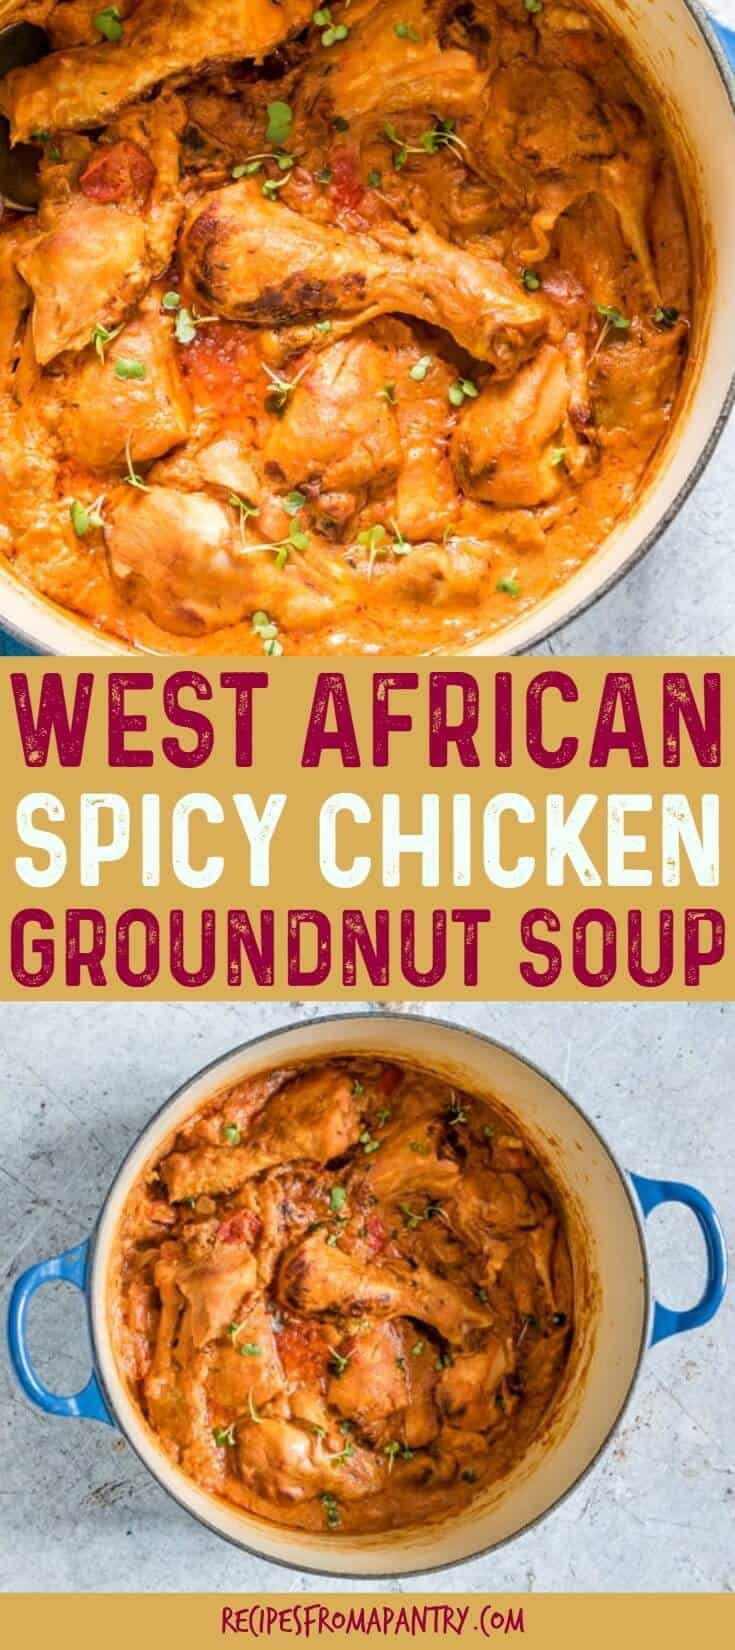 West African Spicy Chicken Groundnut Soup is thick, fragrant and comforting soup (stew). It's easy to make, flavourful, and is ready in just about 1 hr. - Recipes from a Pantry - #groundnutsoup #soup #westafrican #africanpeanutstew #africanpeanutsoup #granat stew, #groundnut stew, #SenegaleseMaafe #maafe #africanchickenstew  via @recipespantry